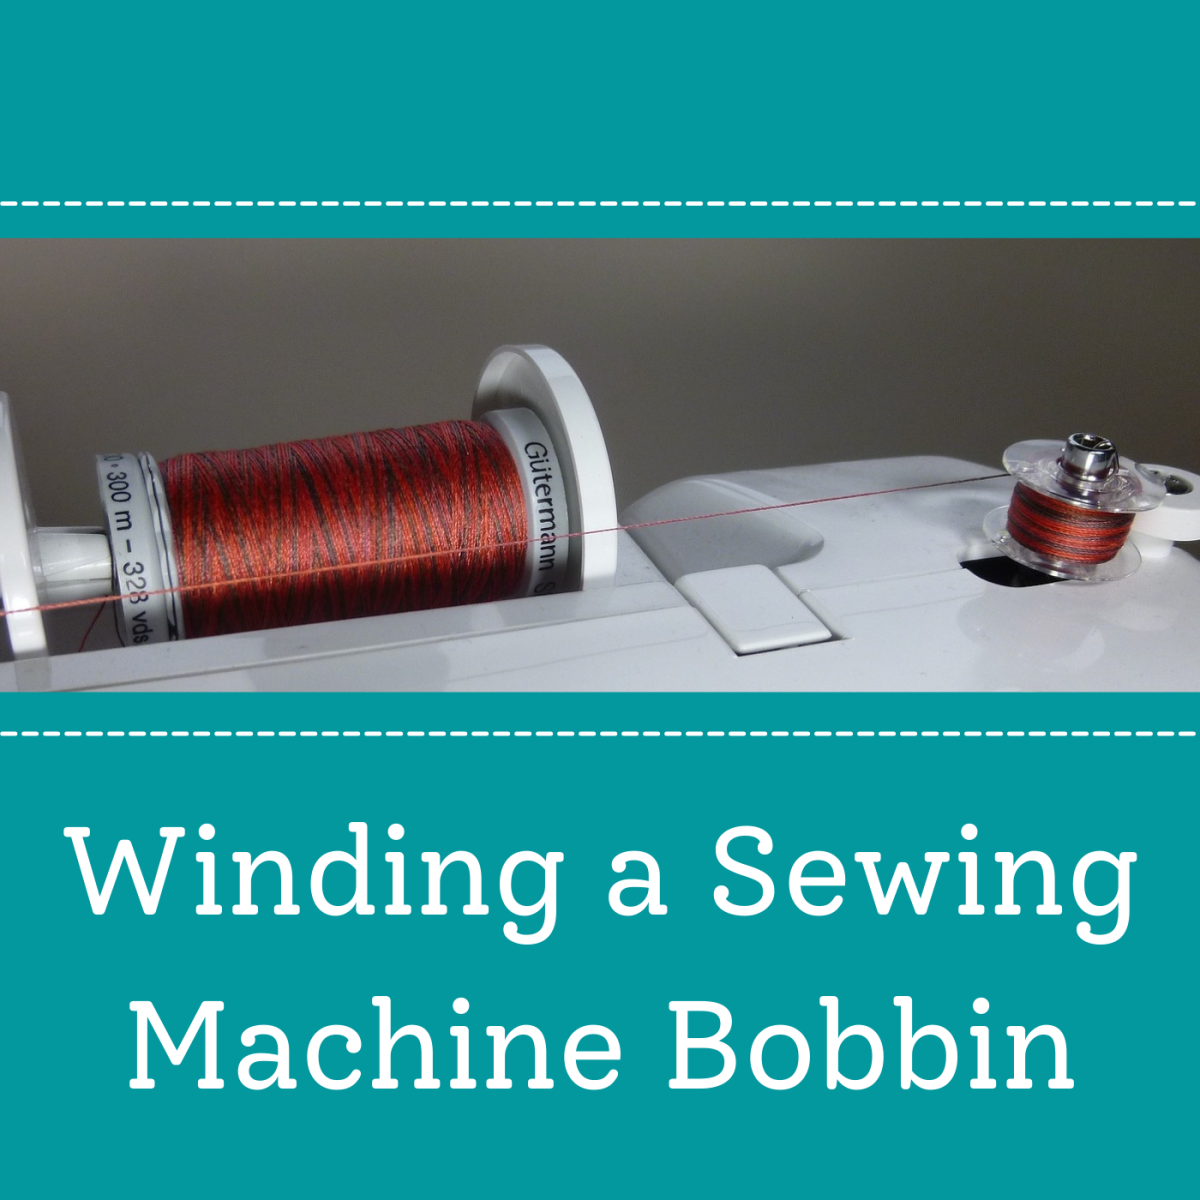 Winding the bobbin on your sewing machine is easy—just follow these five steps!